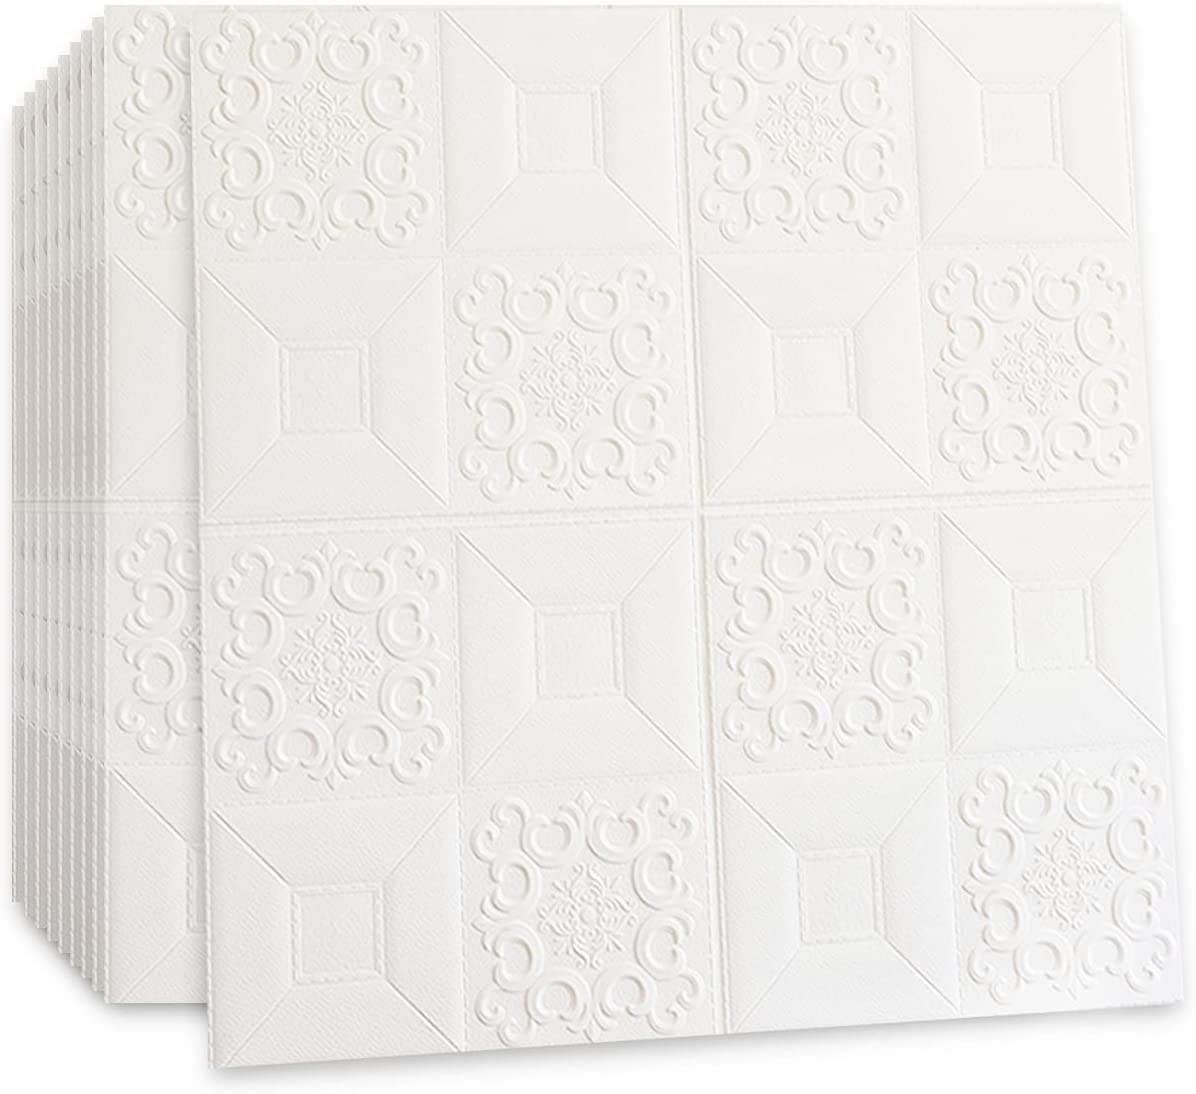 Self-Adhesive 3D Sale Special Price Waterproof PE Foam Wall I Stick Detroit Mall for White Panel